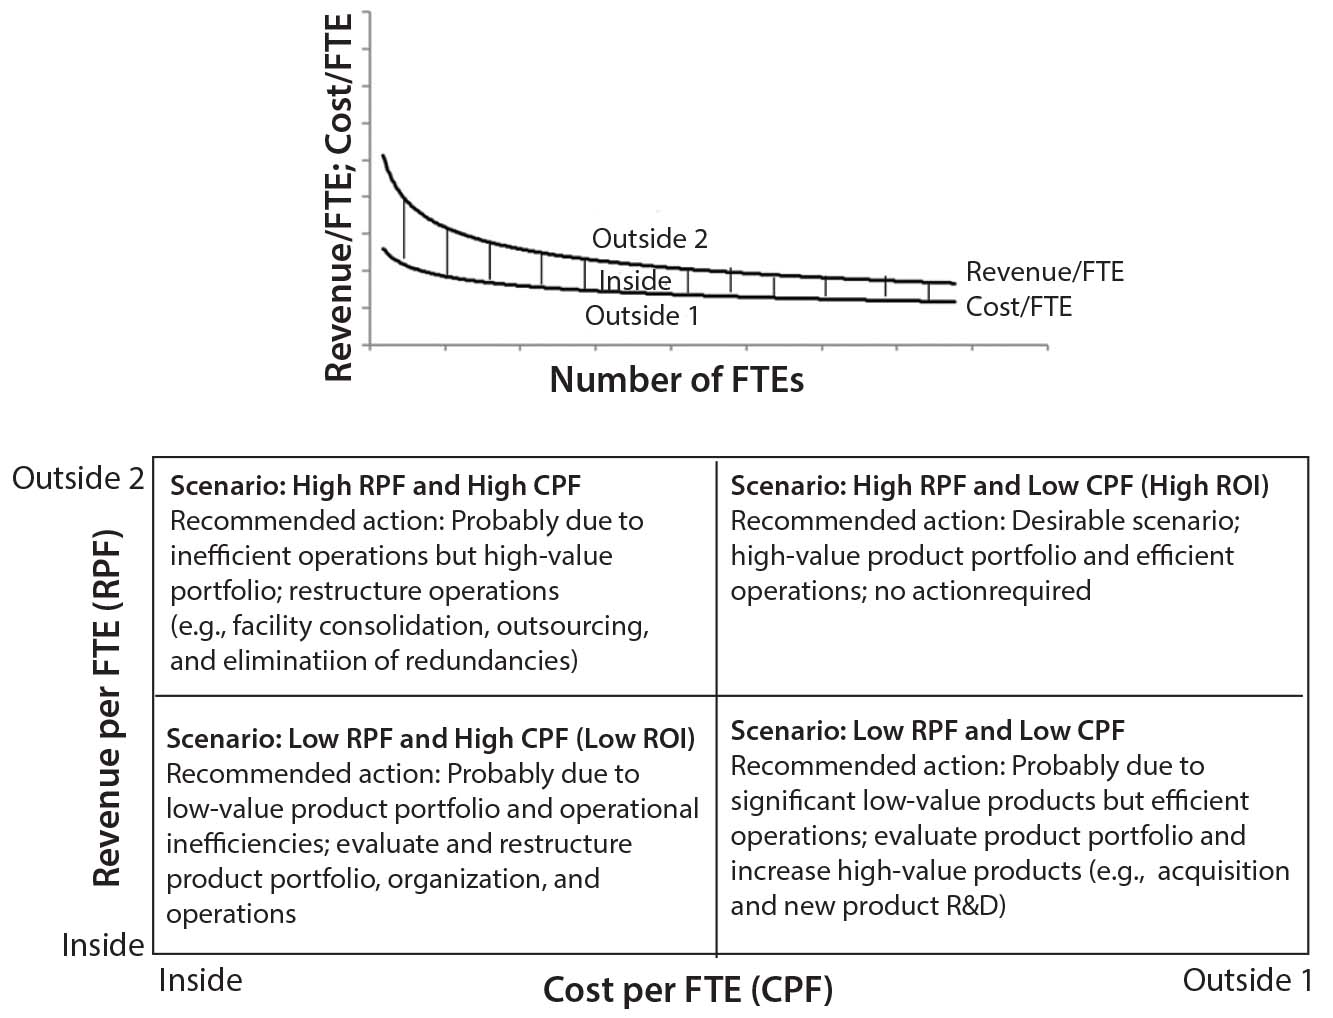 Revenue per FTE and Cost per FTE: Metrics of Operational Efficiency